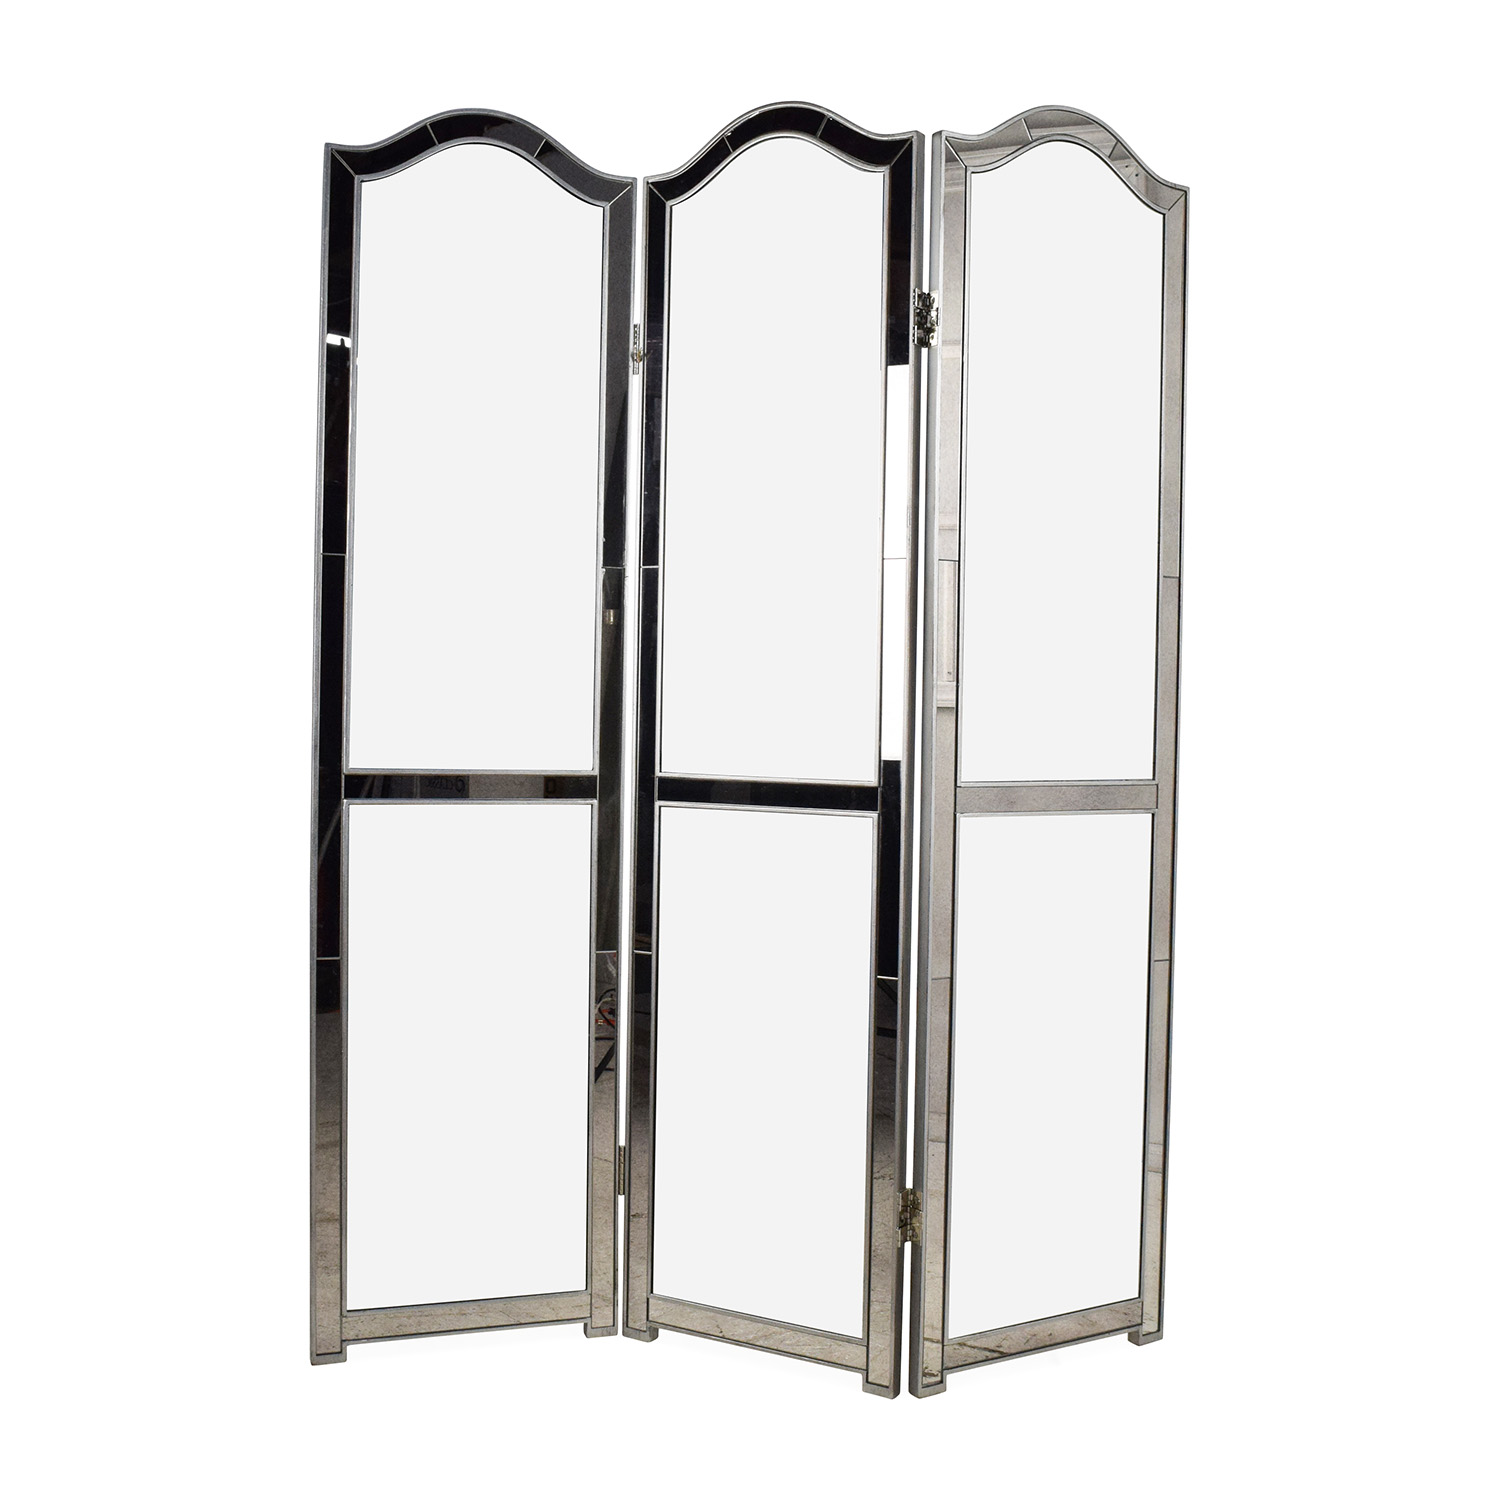 Pier 1 Hayworth Mirrored Room Divider sale